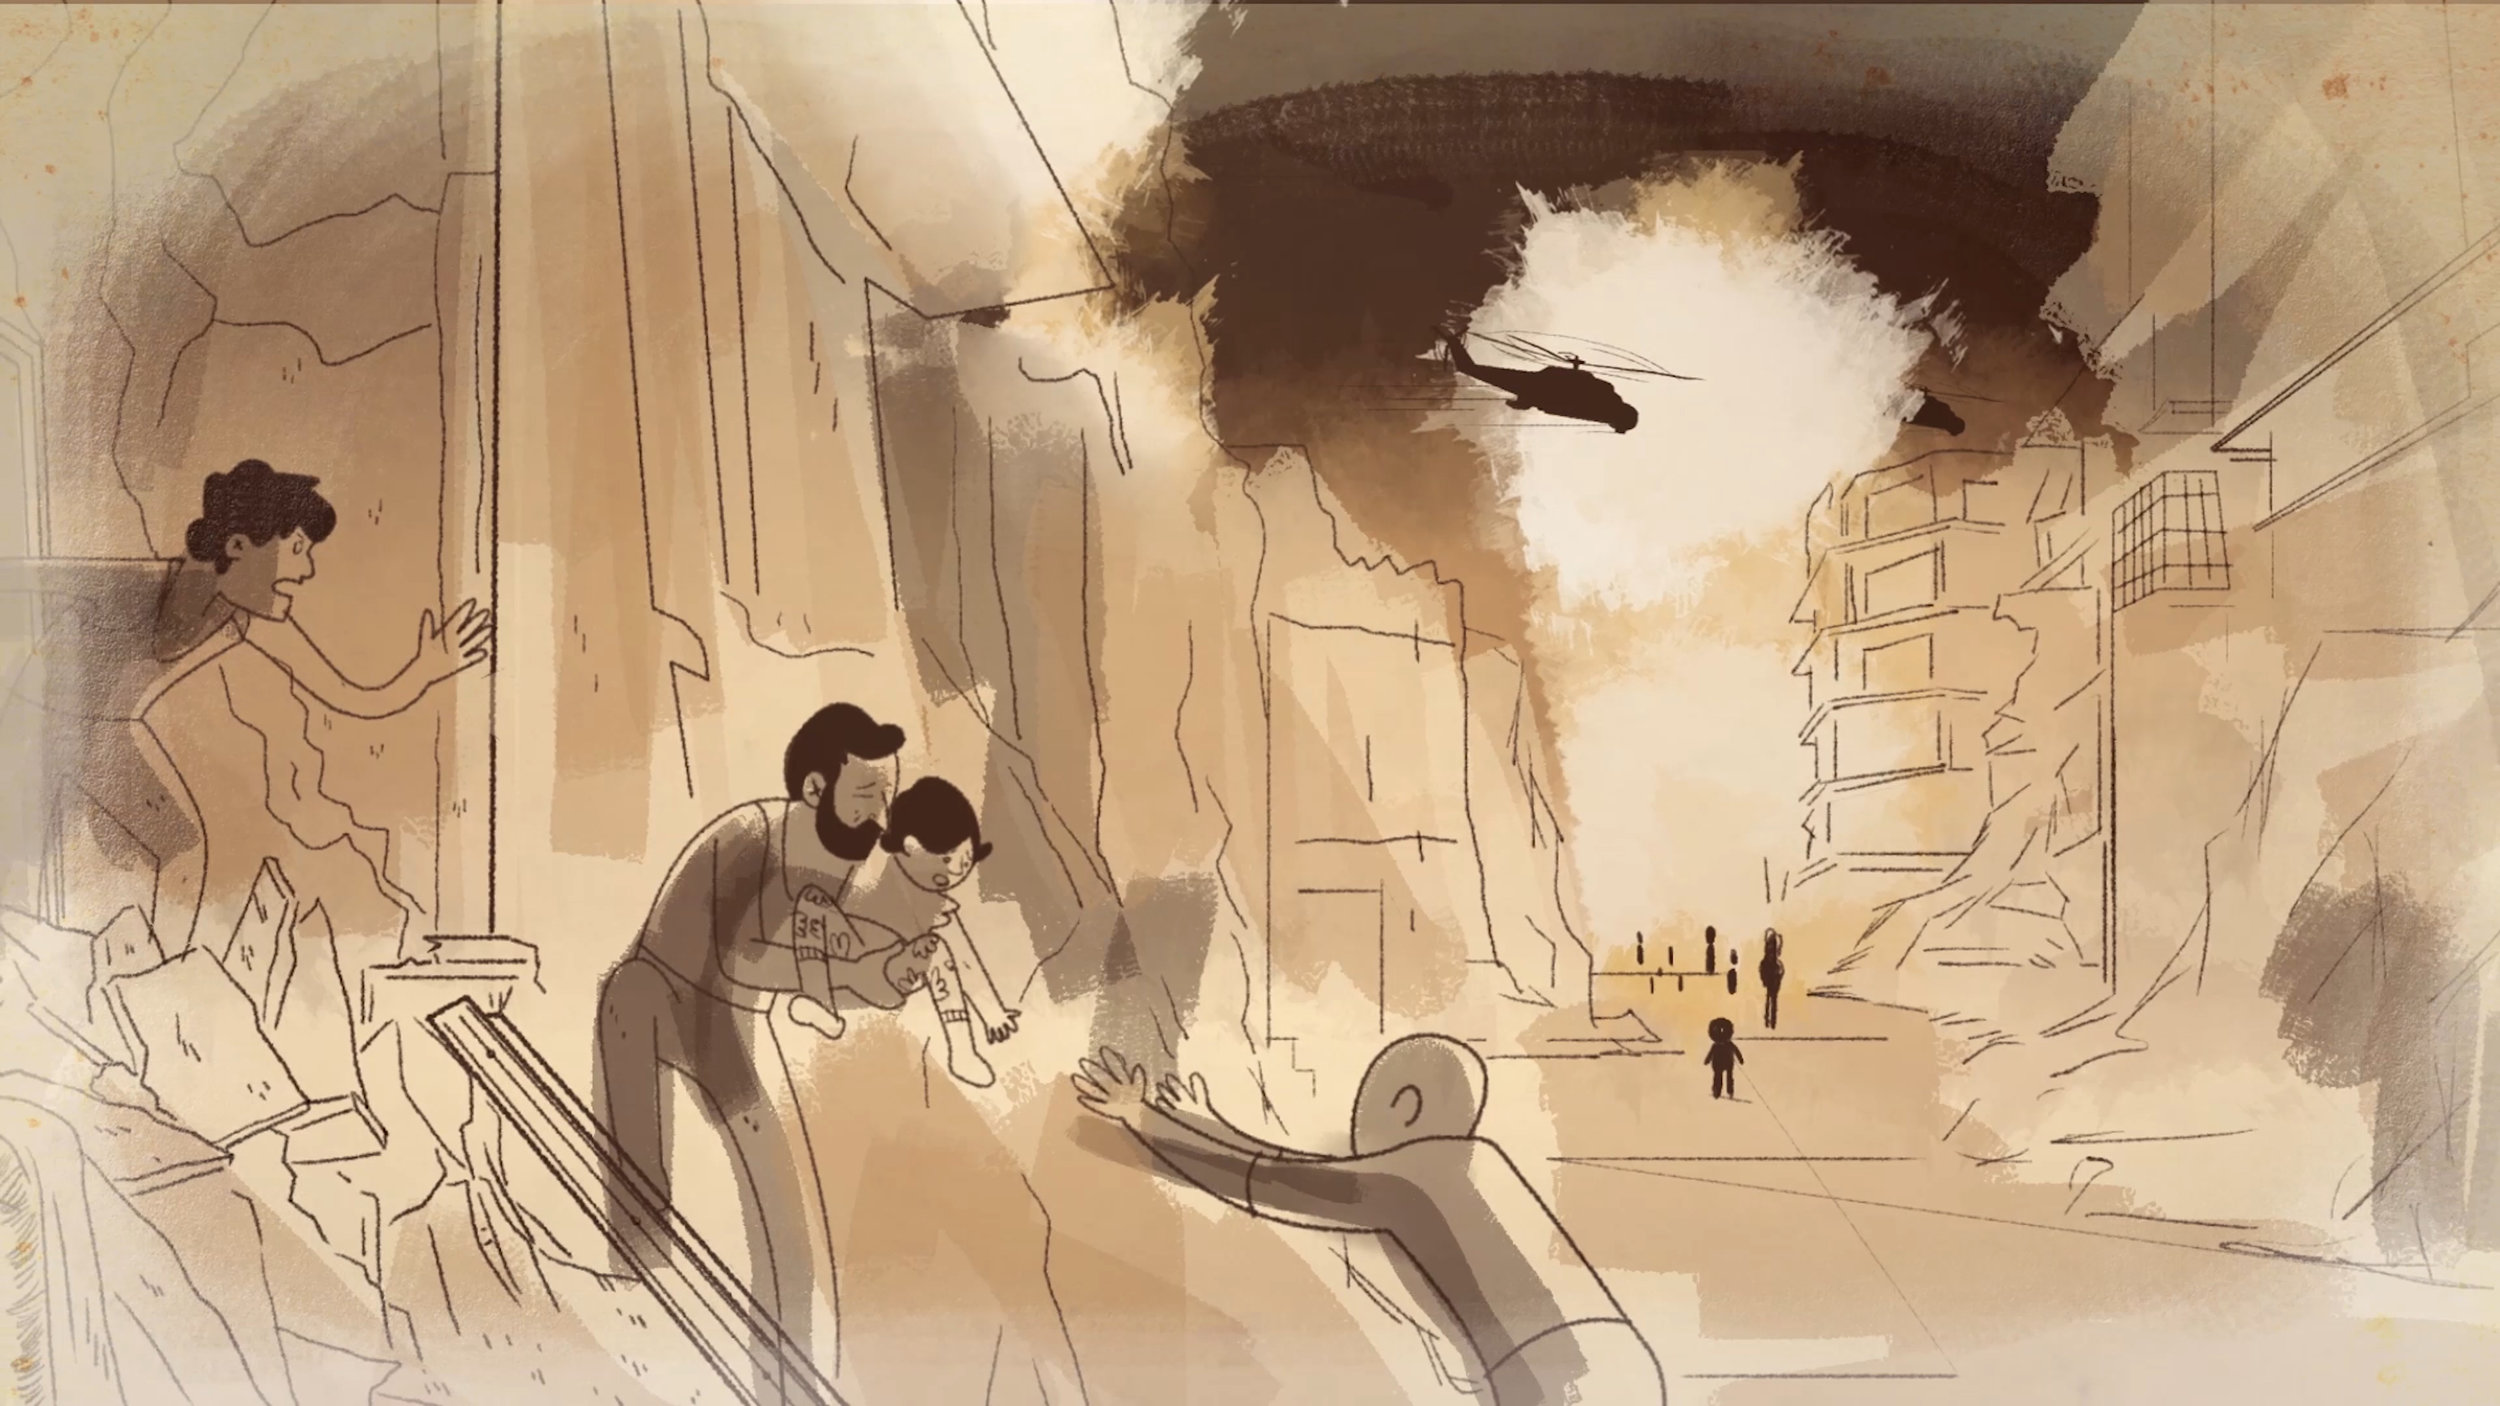 Unbroken Paradise - A clip of the animated portion of the film showing the aftermath of shelling in a neighbourhood in Syria. Illustration and animation by Alcides Urrutia, Pirata y Luna Creative Studio.